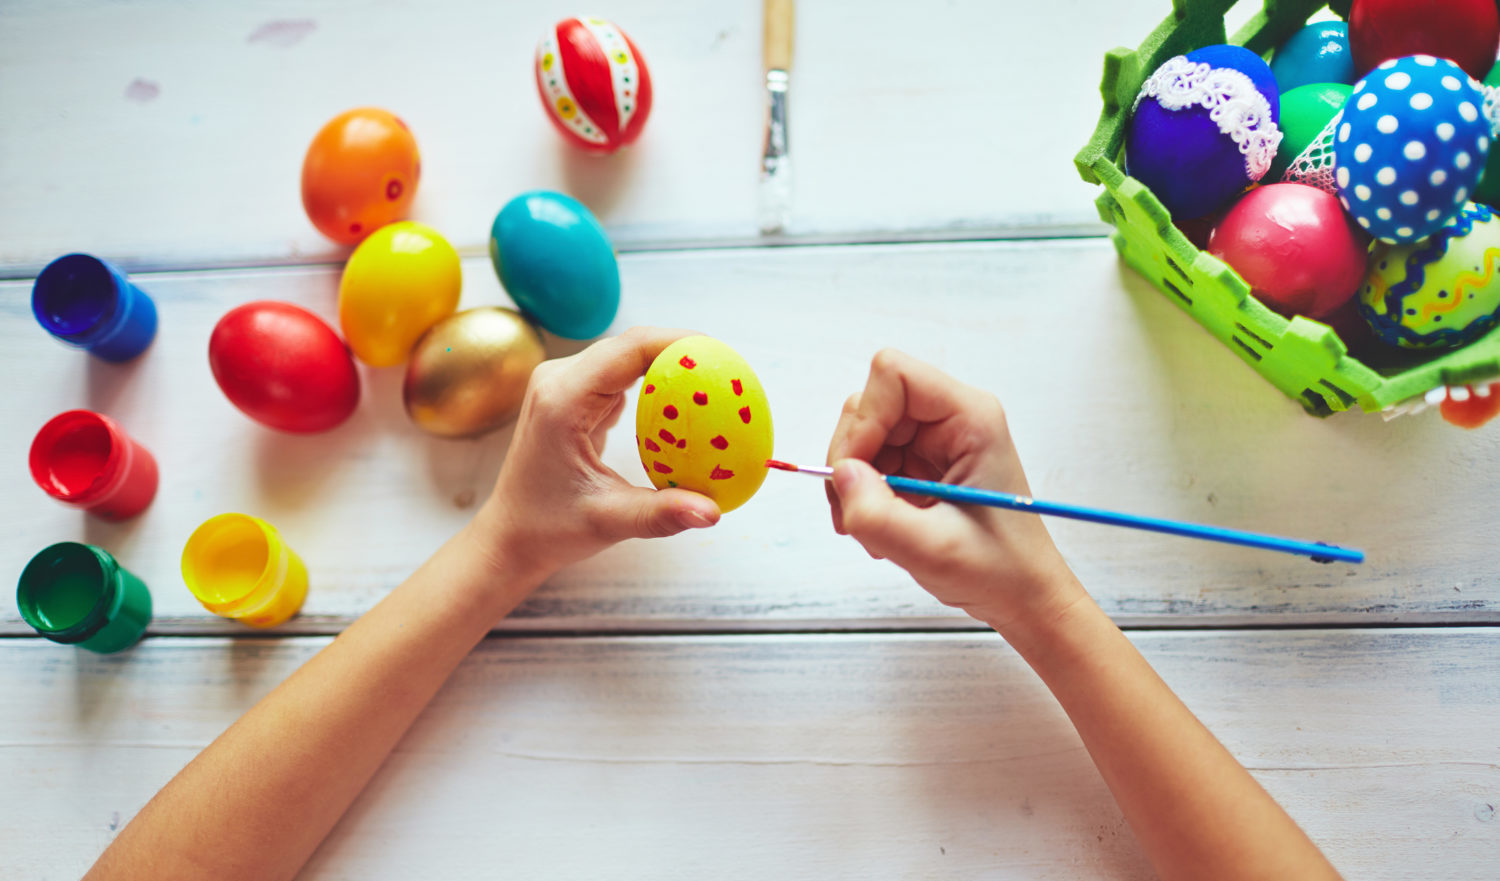 Girl decorating Easter eggs